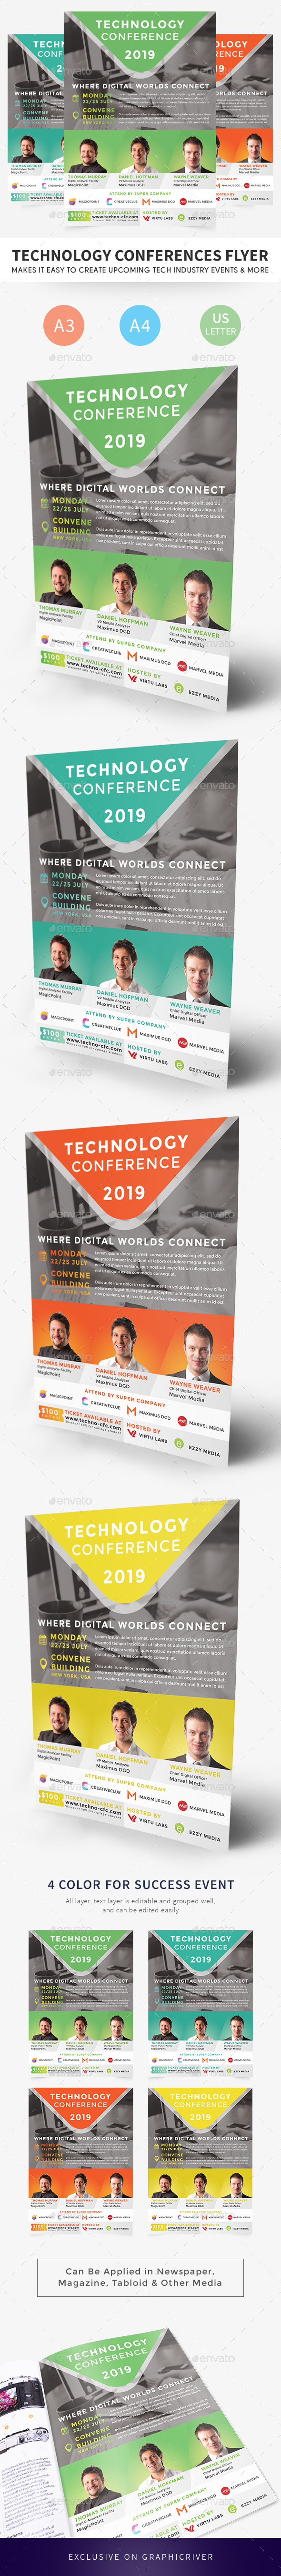 Technology Conferences Flyer - Corporate Flyers